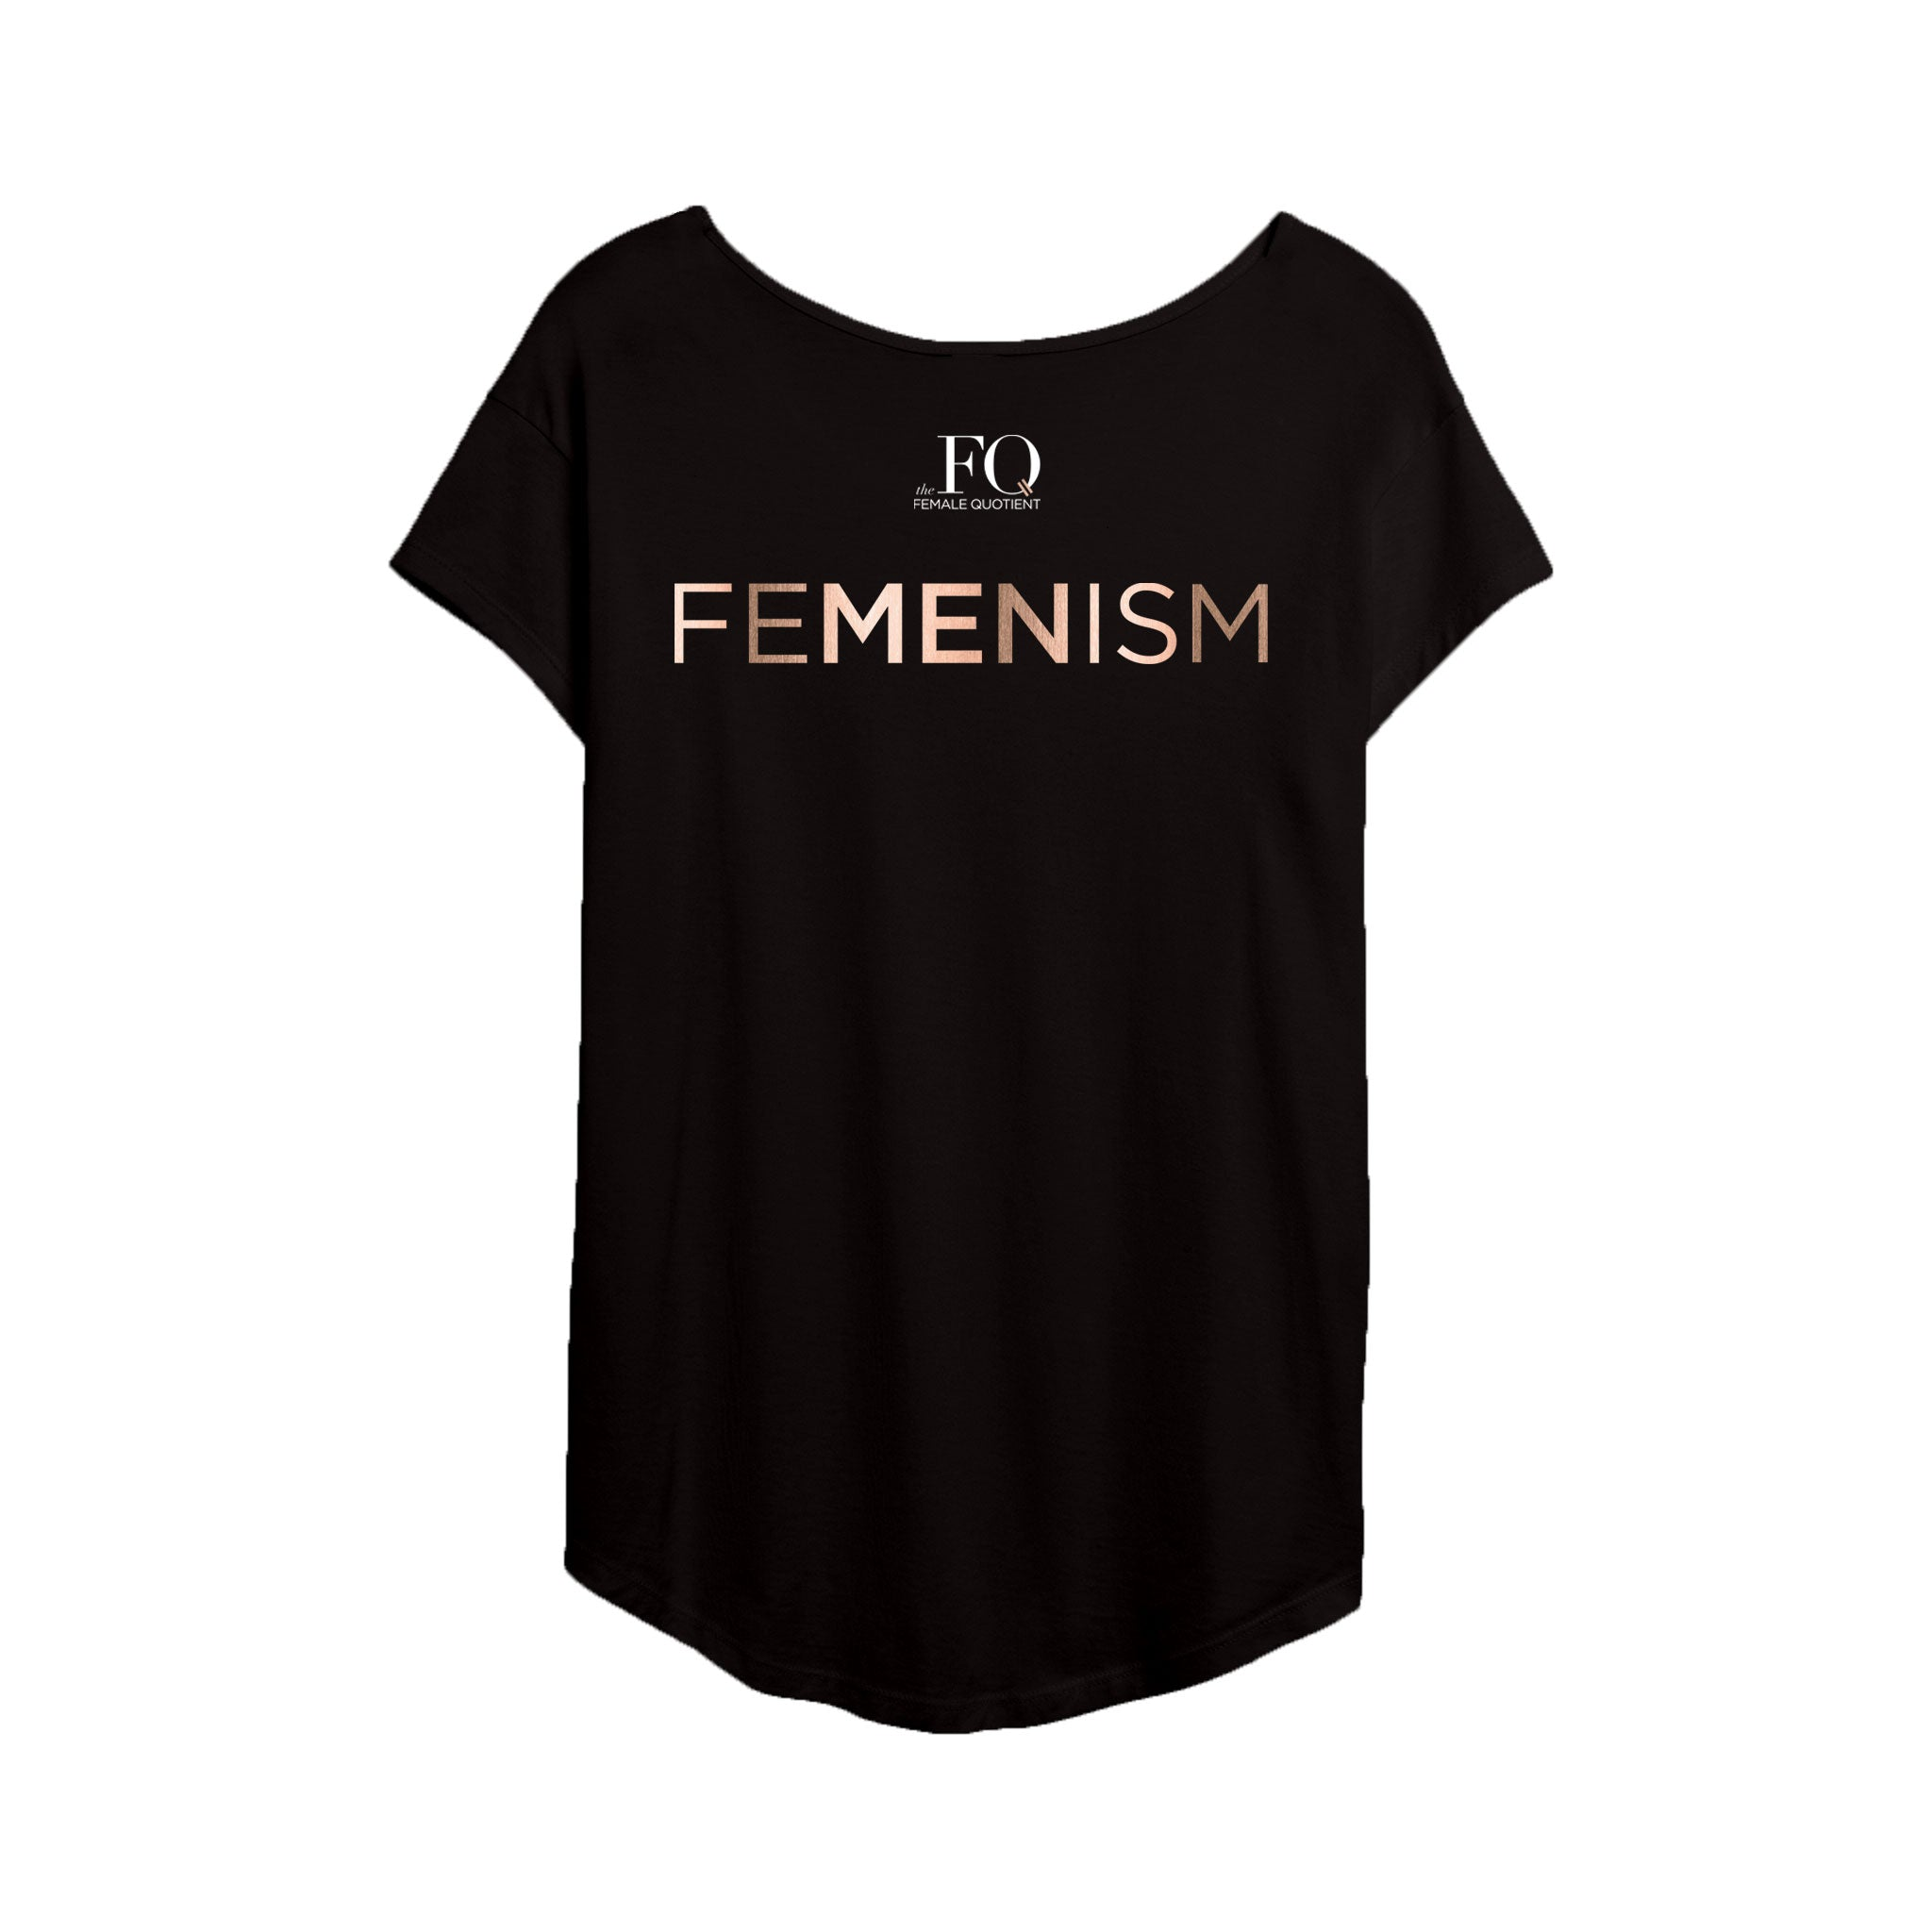 My Favorite F Word is.... FEMENISM